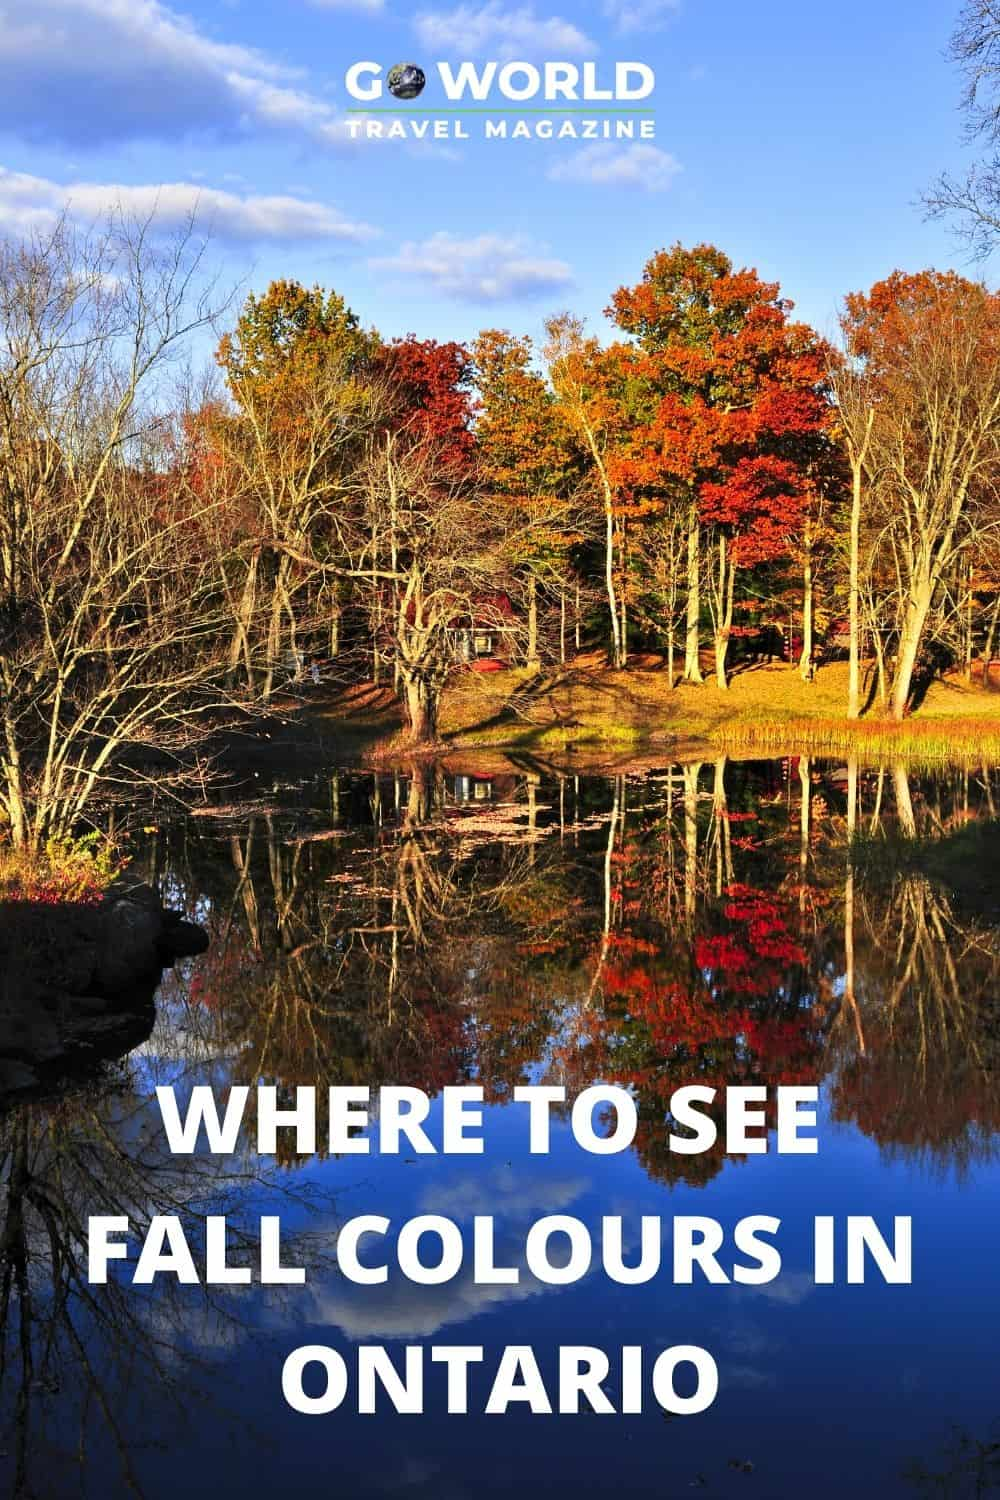 The fall colours in Ontario are spectacular and the best way to see them is by car or train. Here's a list of drives for Ontario leaf-peeping. #Ontarioinfall #fallcoloursinontario